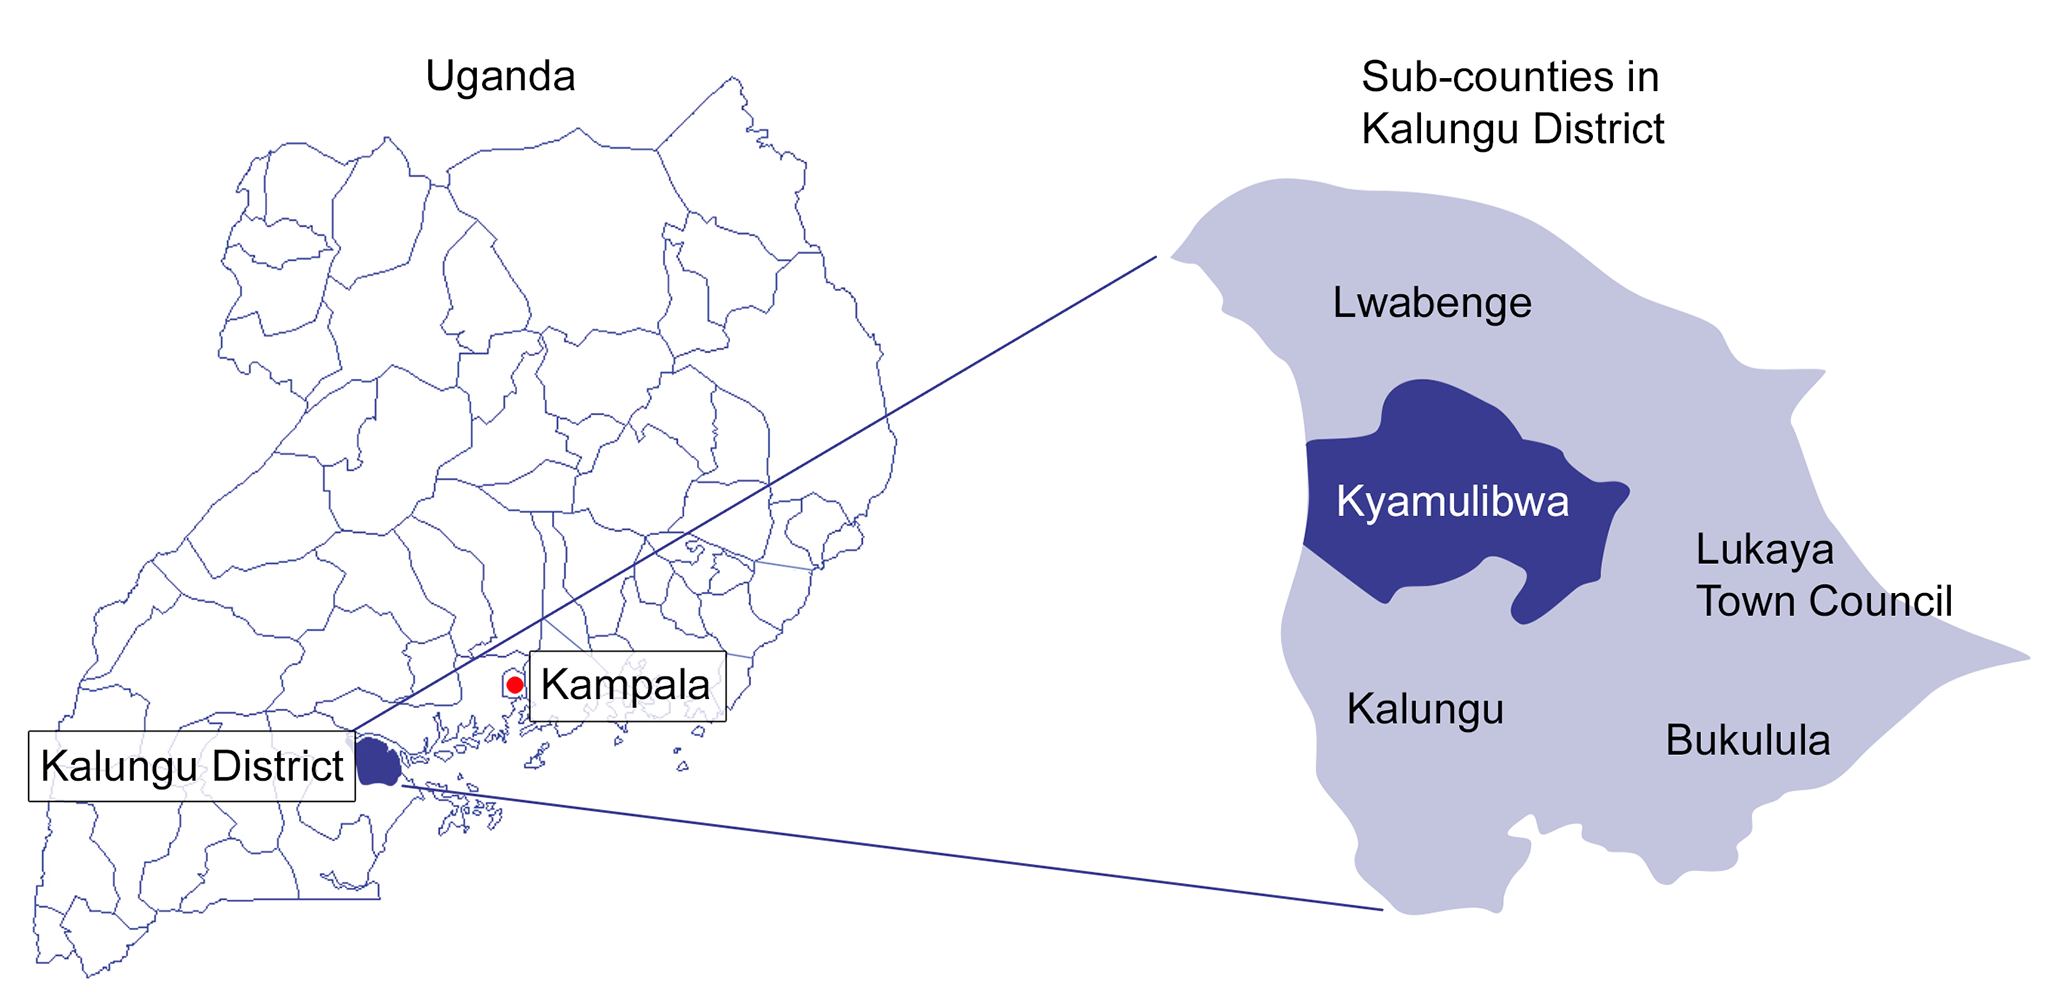 Map of districts within Uganda and sub-counties within Kalungu District.